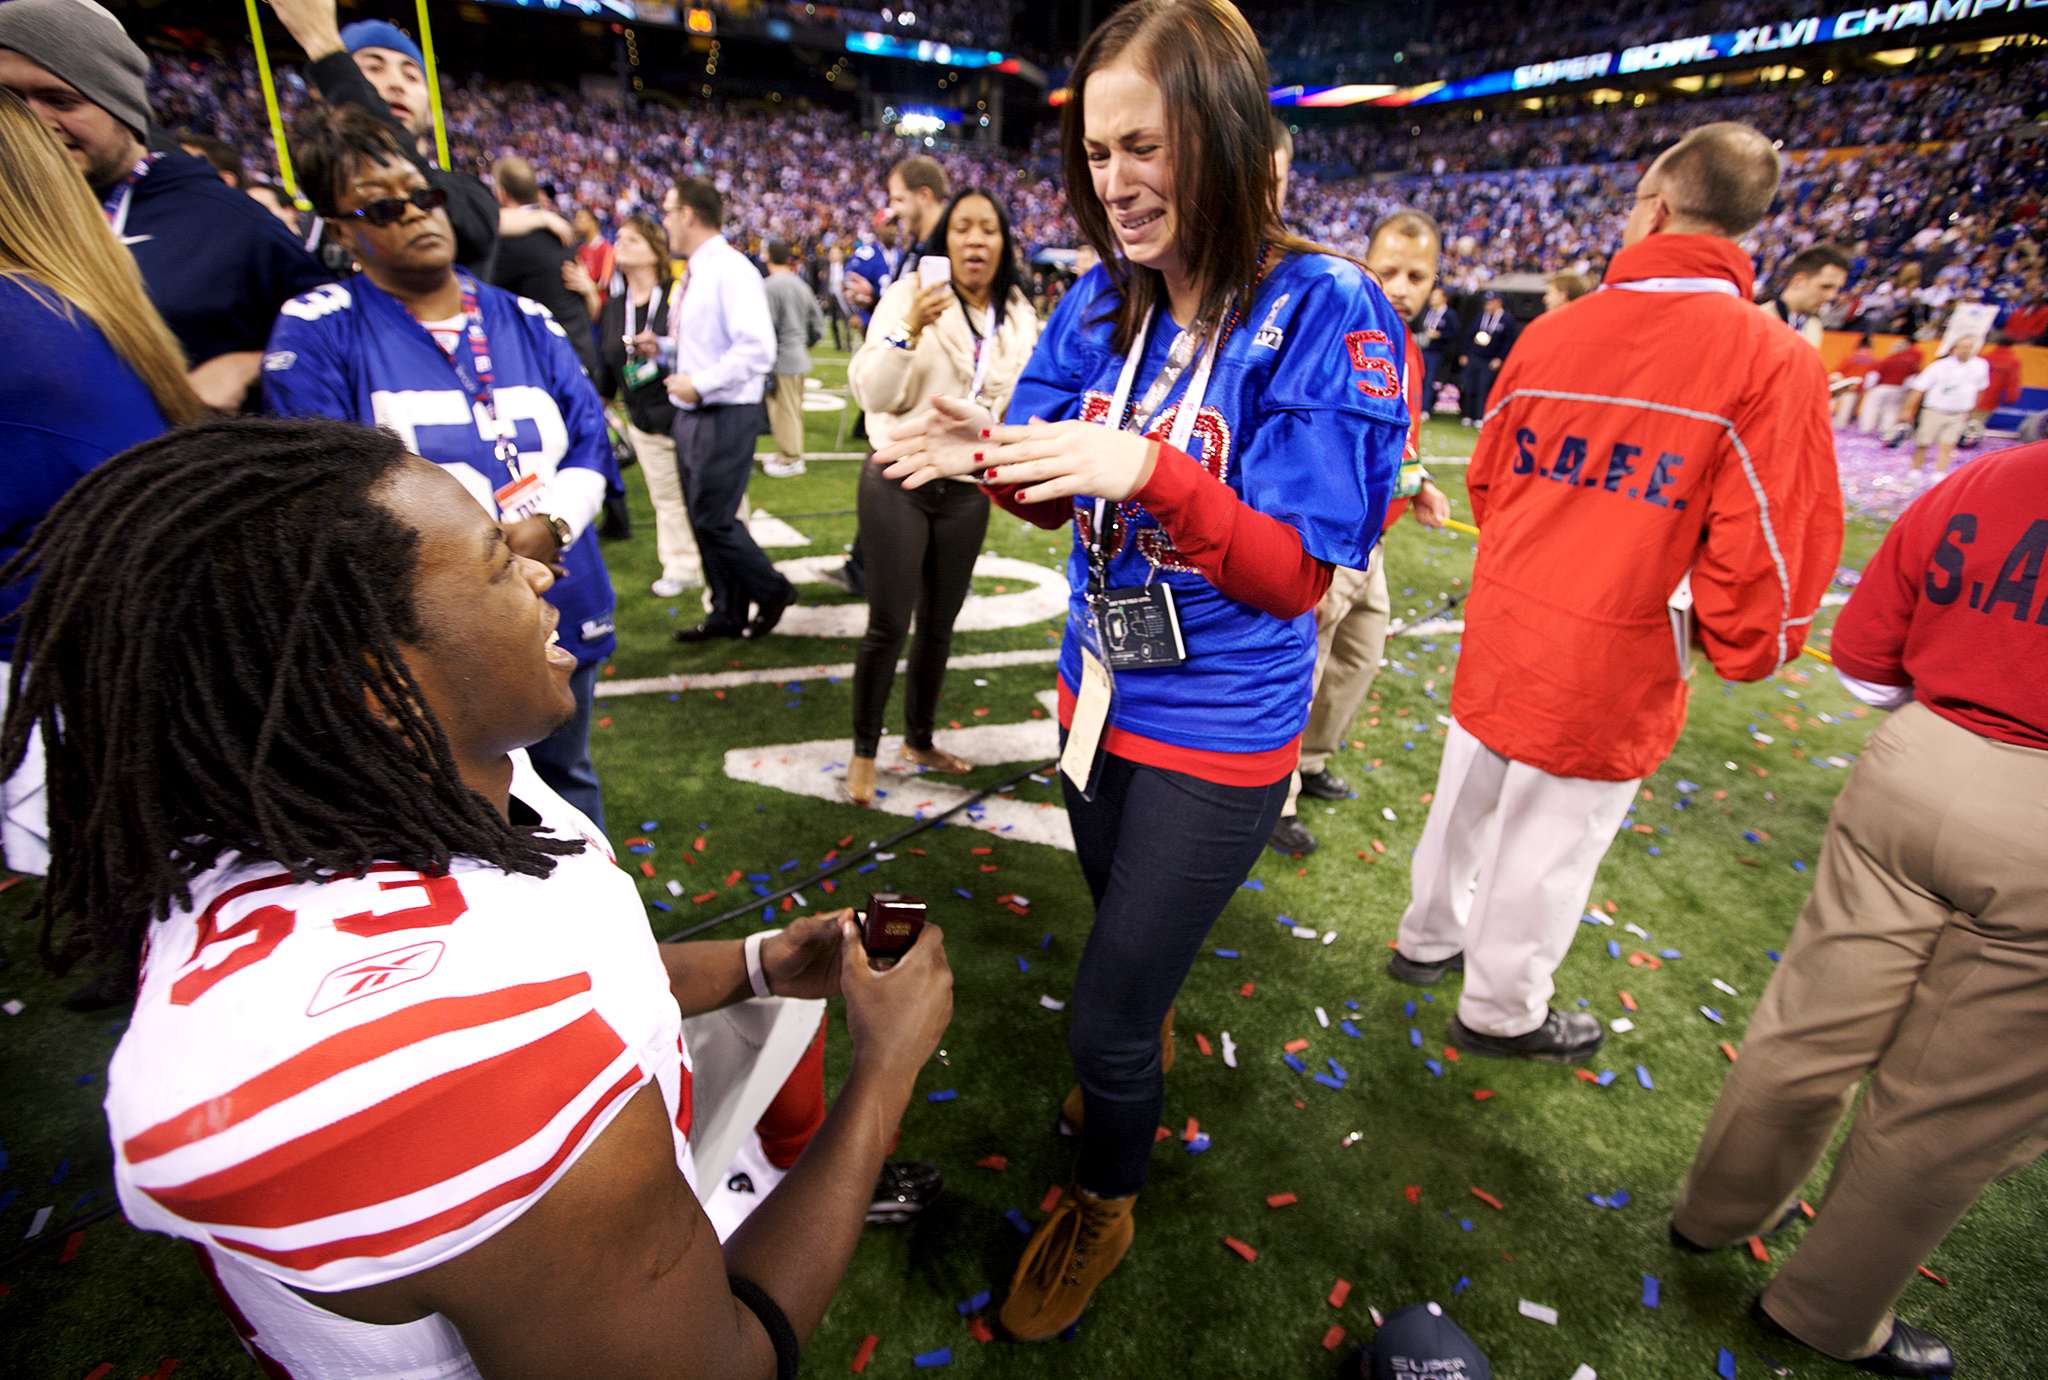 Because winning Super Bowl XLVI wasn't enough for one day, New York Giants linebacker Greg Jones made the day even more memorable by getting engaged to former Michigan State basketball star Mandy Piechowski in the middle of a confetti-filled celebration.